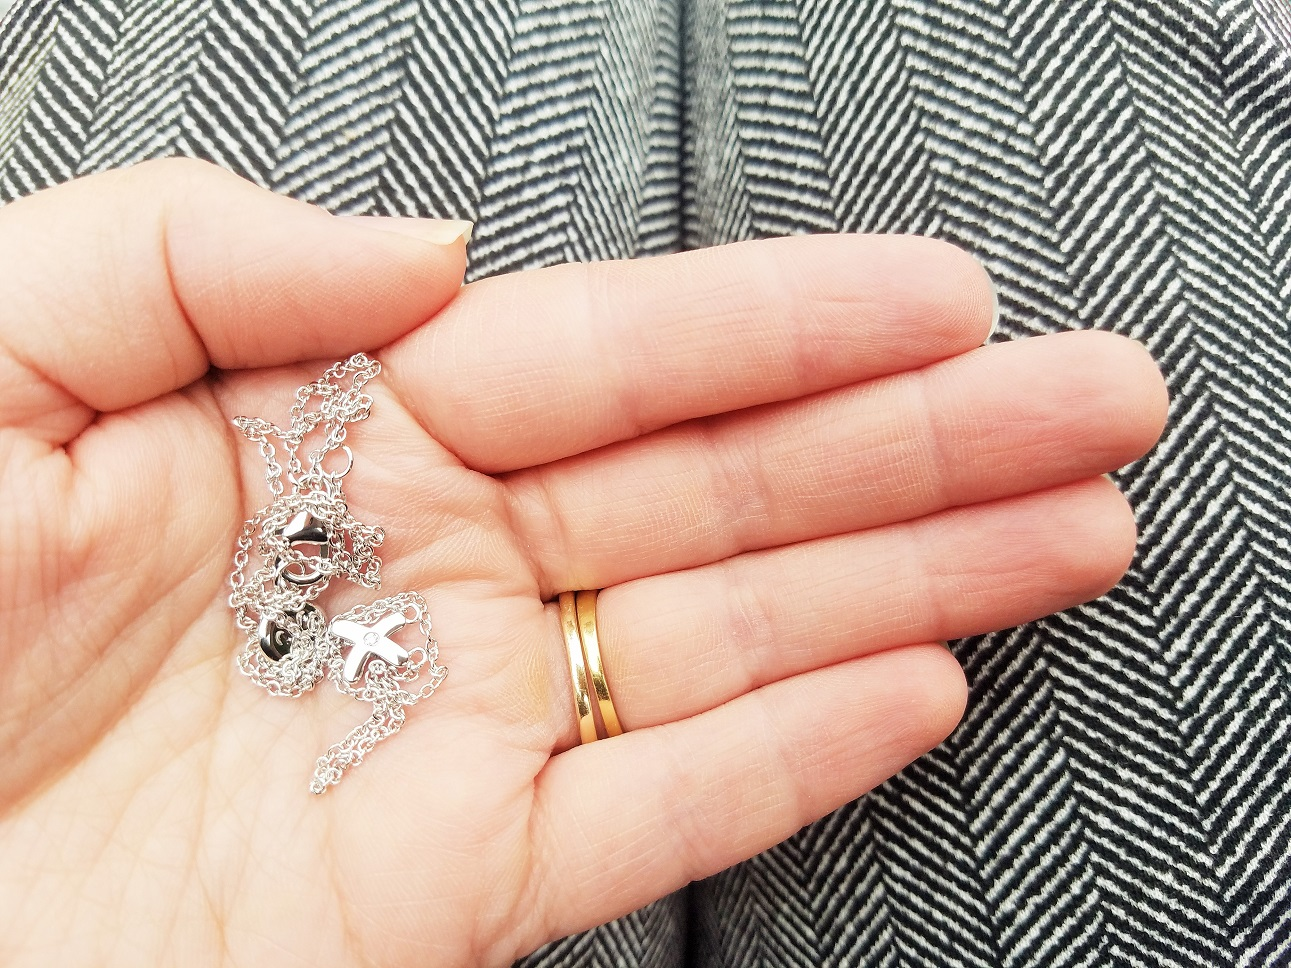 My first diamond necklace kiss pendant - a blog review